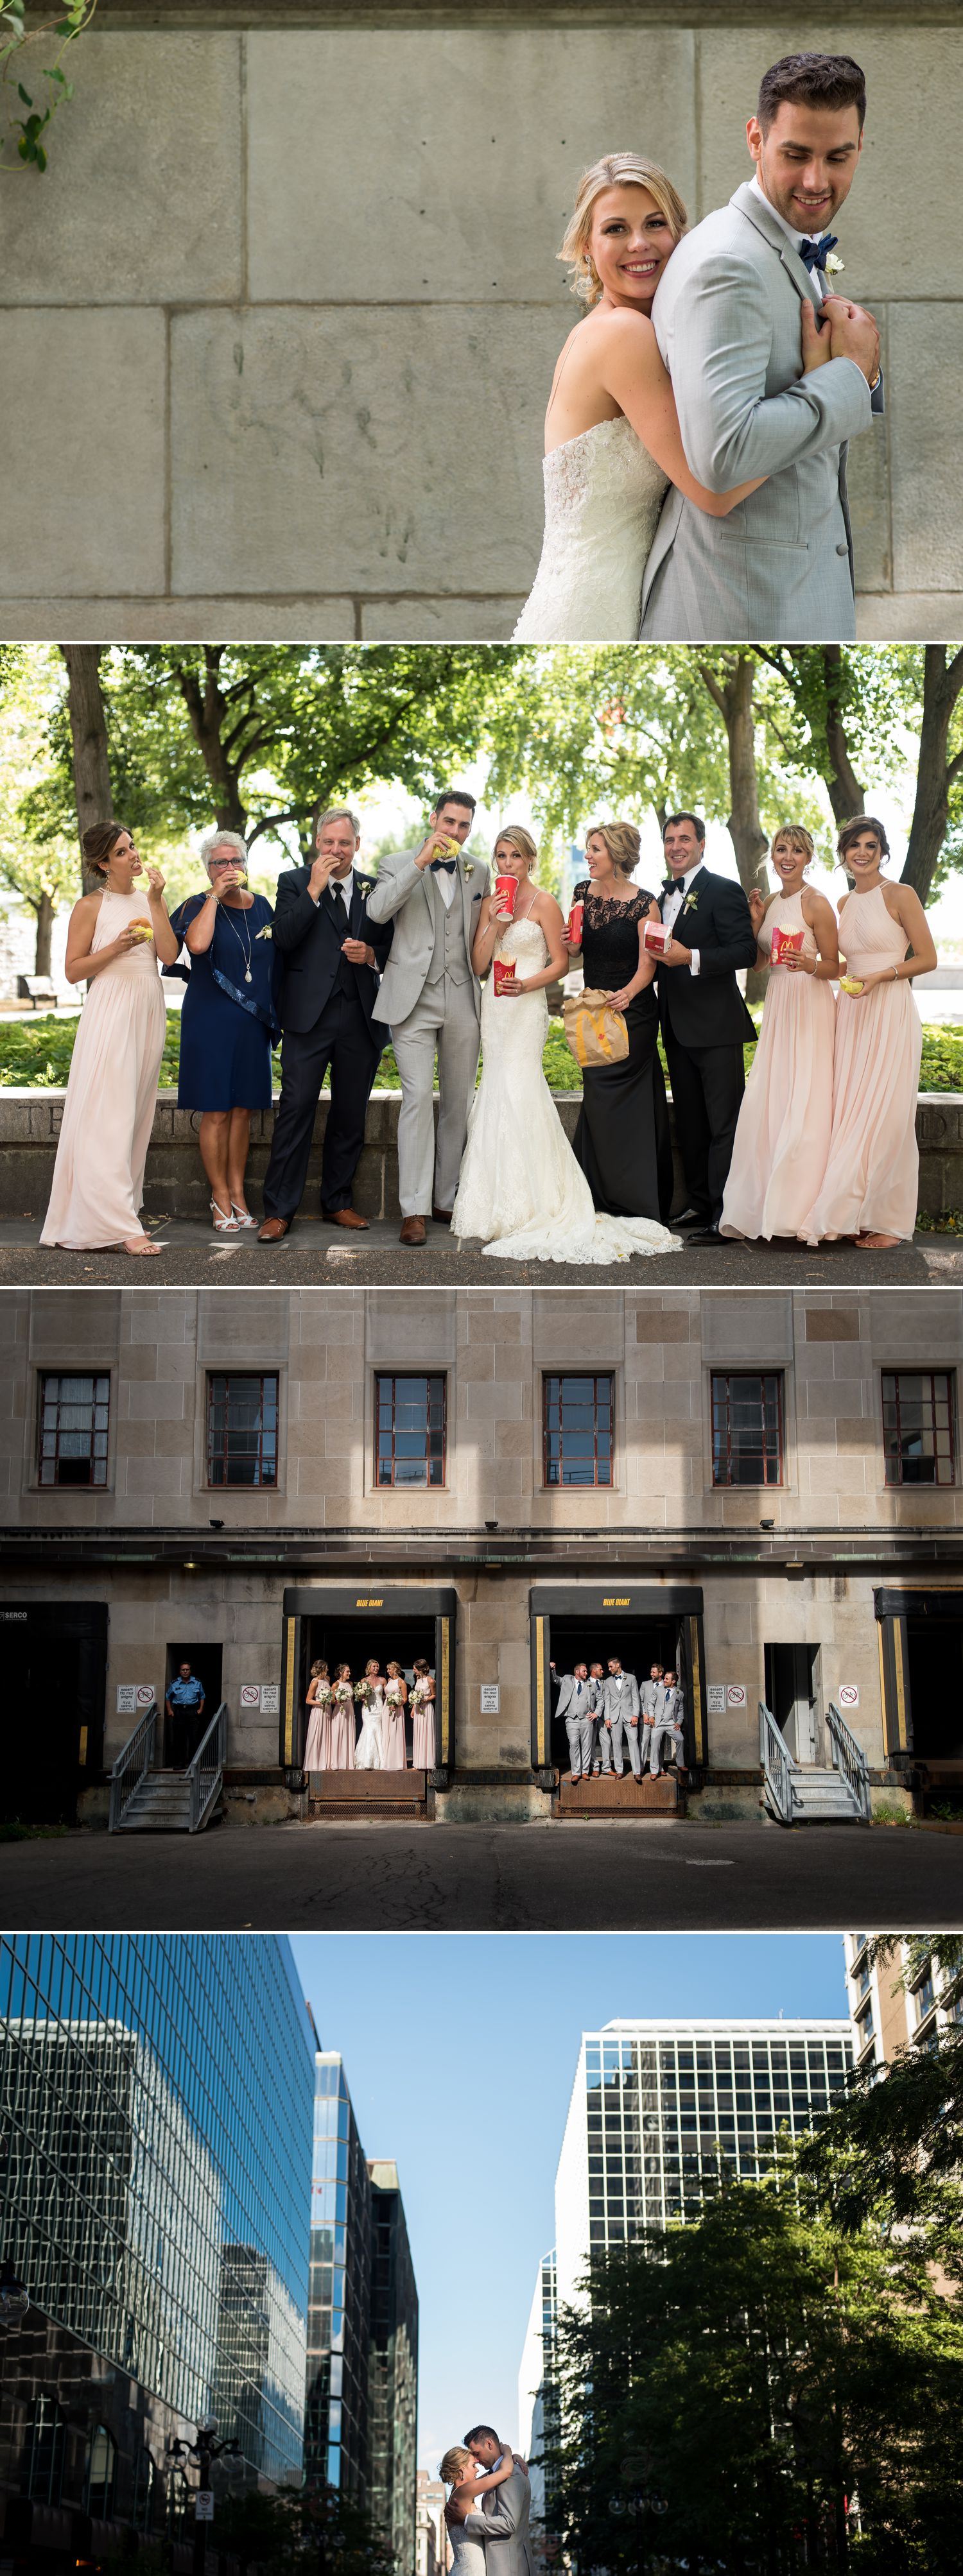 Portraits of the bride and groom and their wedding party in a nearby park in downtown Ottawa